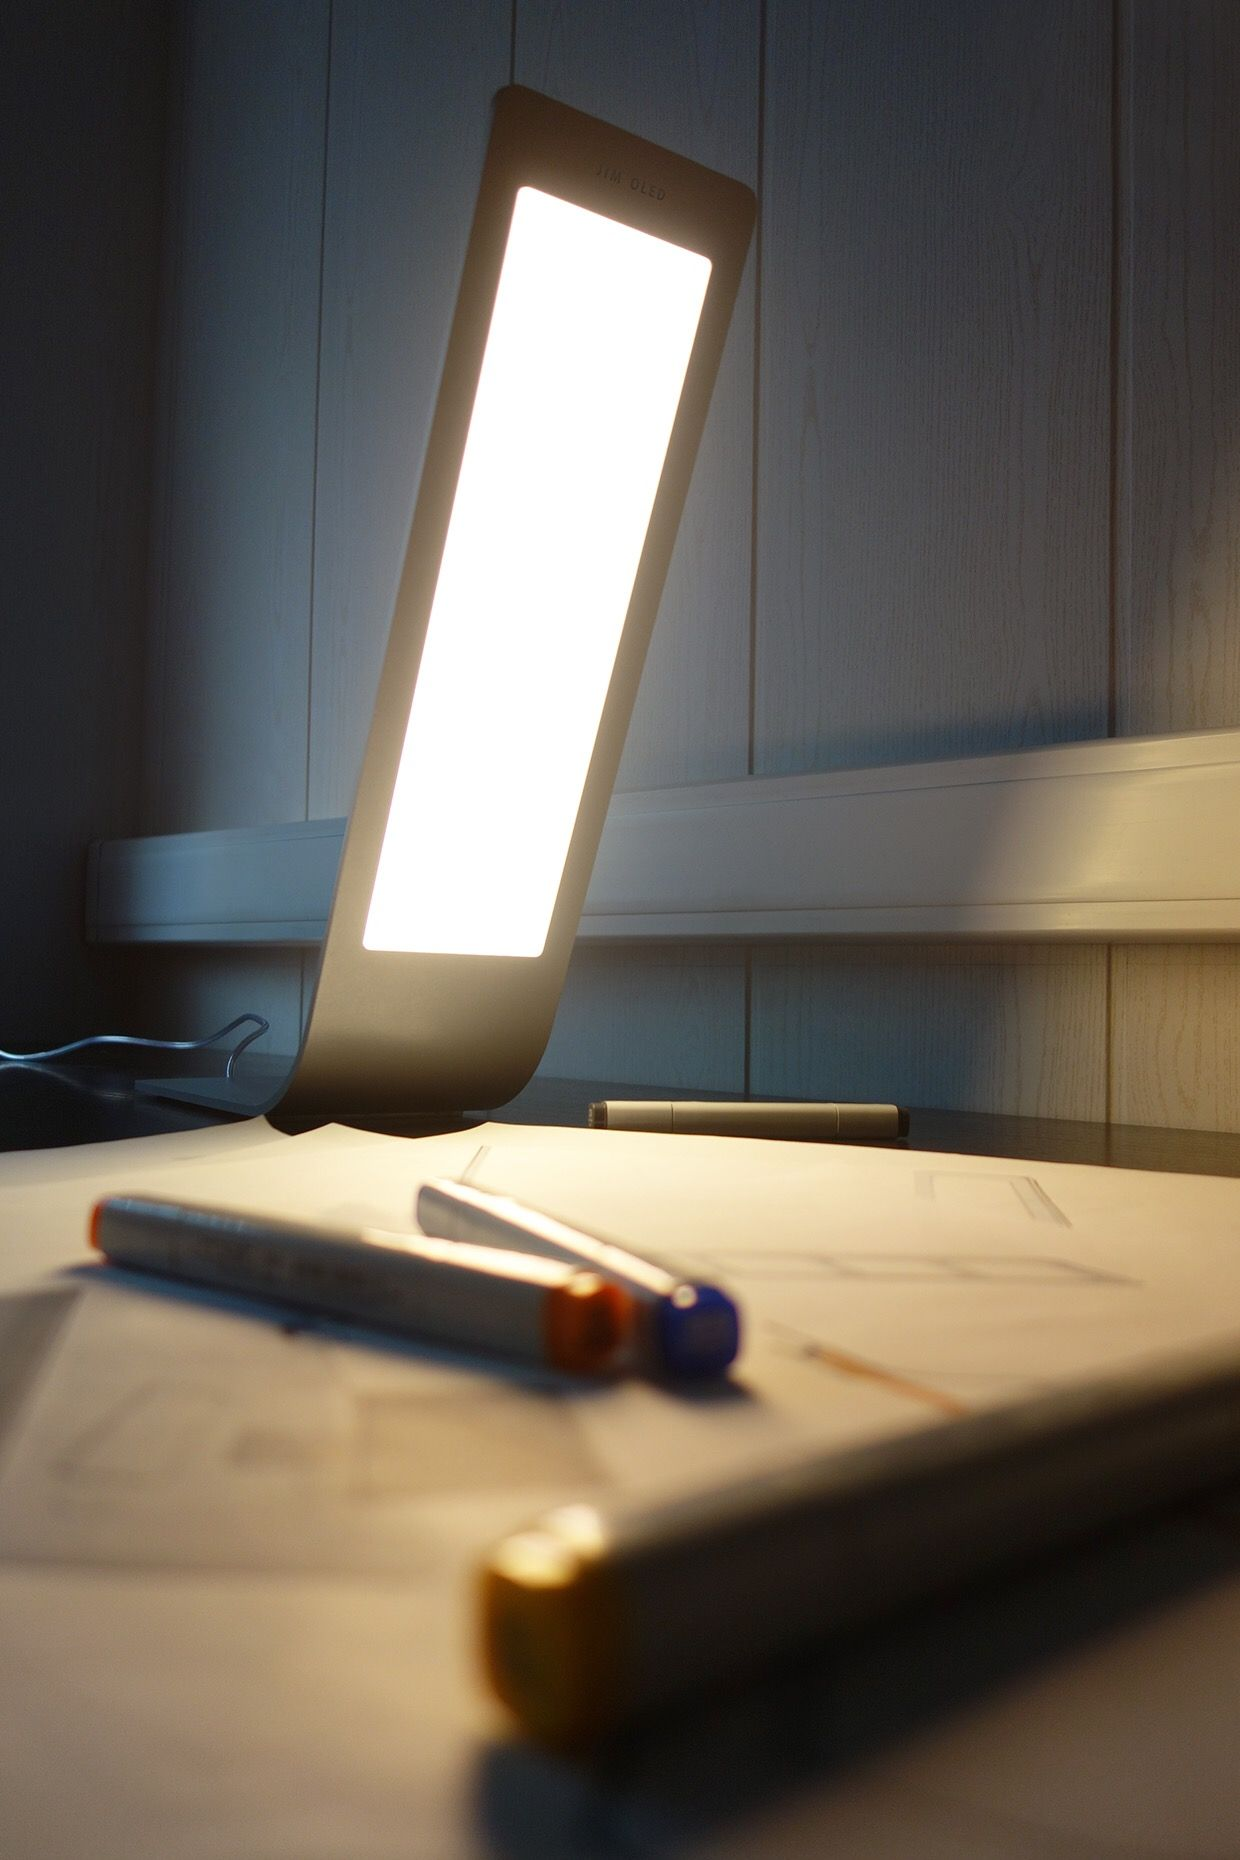 desk lighting solutions. Olga Kalugina\u0027s JIM Lamp Combines Apple-style Minimalism With Ultra-thin OLED Lighting To Achieve A Modern, Simplistic Aesthetic That\u0027s Complimentary Of Desk Solutions